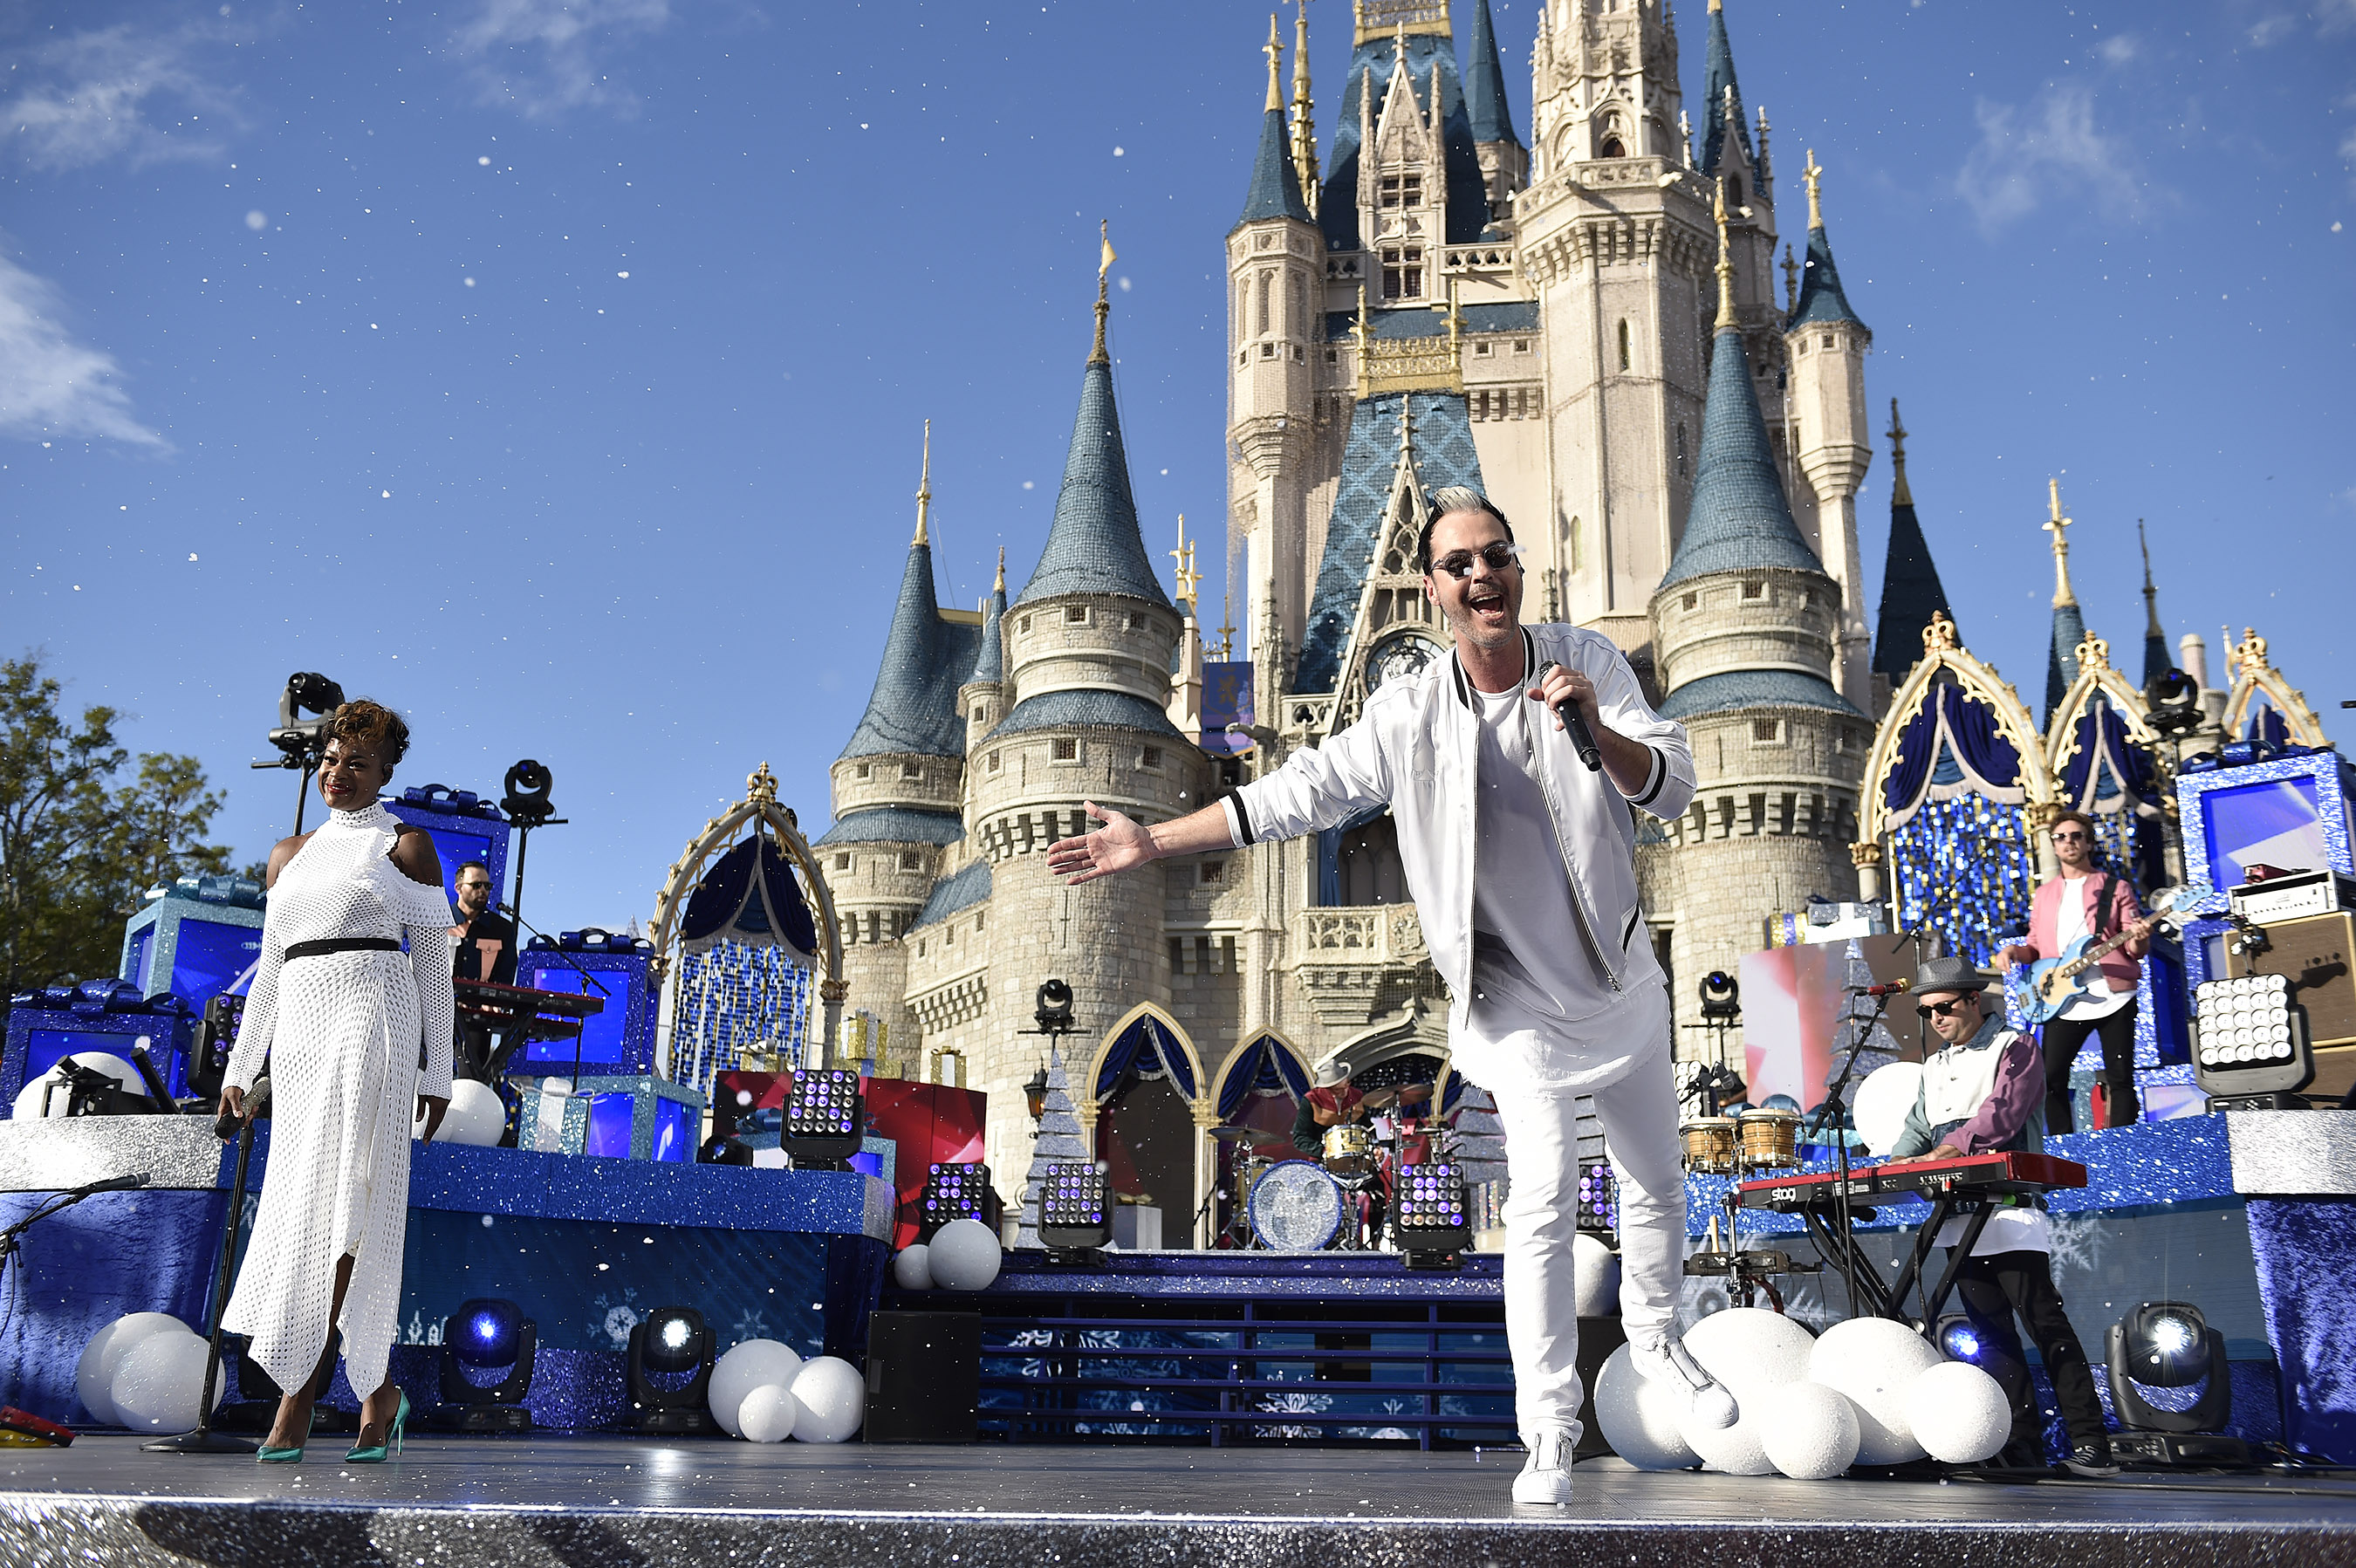 """LAKE BUENA VISTA, FL - NOVEMBER 05:  Fitz and the Tantrums perform """"Last Christmas"""" at Magic Kingdom Park in Lake Buena Vista Fla., November 5, 2017, during a taping of """"Disney Parks Magical Christmas Celebration."""" The star-studded Christmas special, featuring performances from Walt Disney World Resort in Florida and Disneyland Resort in California, premieres December 25, 10a.m.-11a.m. EST, on The ABC Television Network.  (Photo by Mark Ashman/Disney Parks via Getty Images)"""